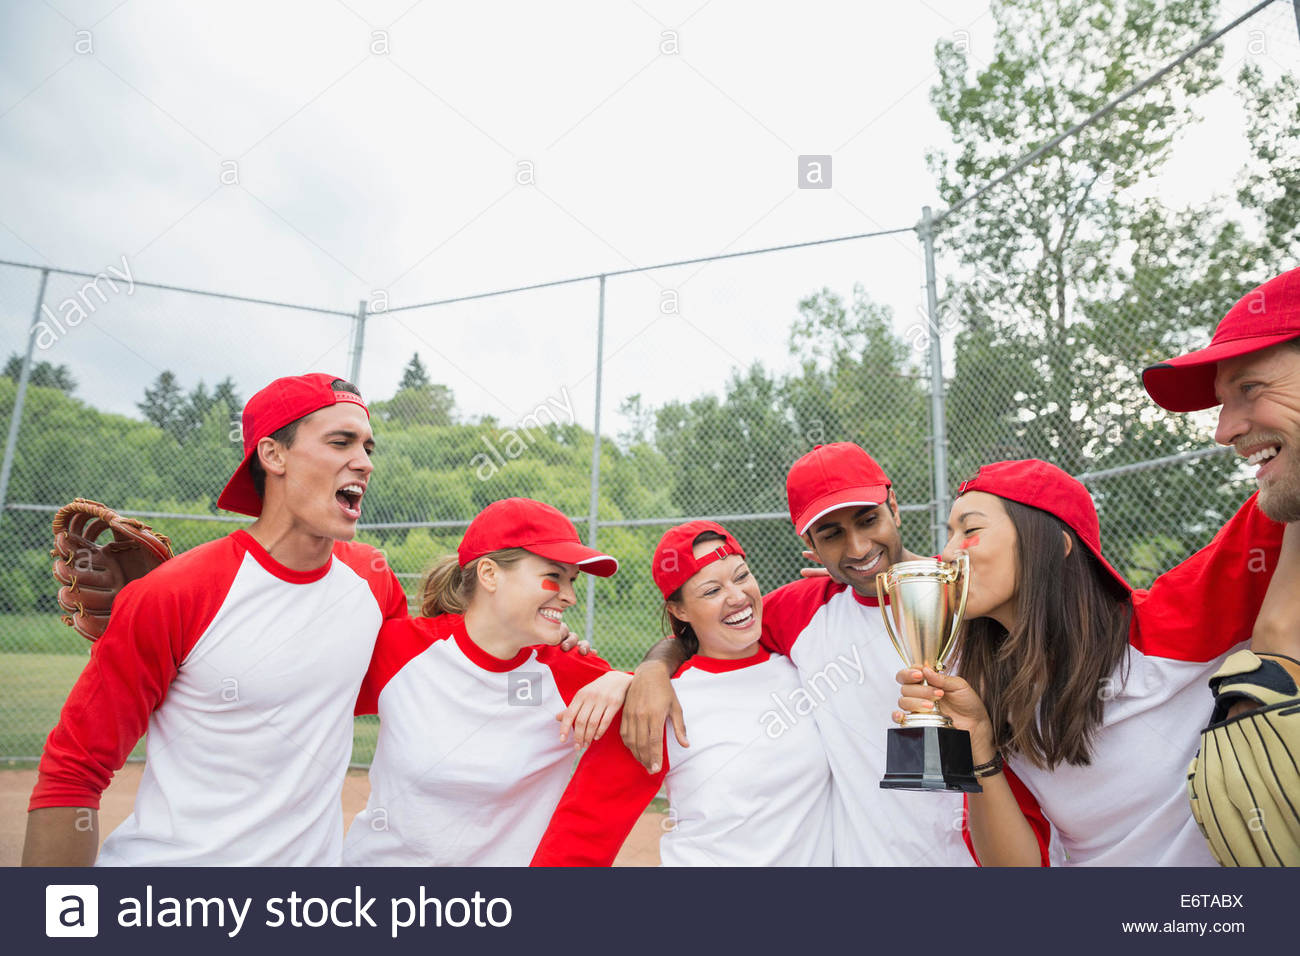 Baseball team cheering with trophy in field - Stock Image